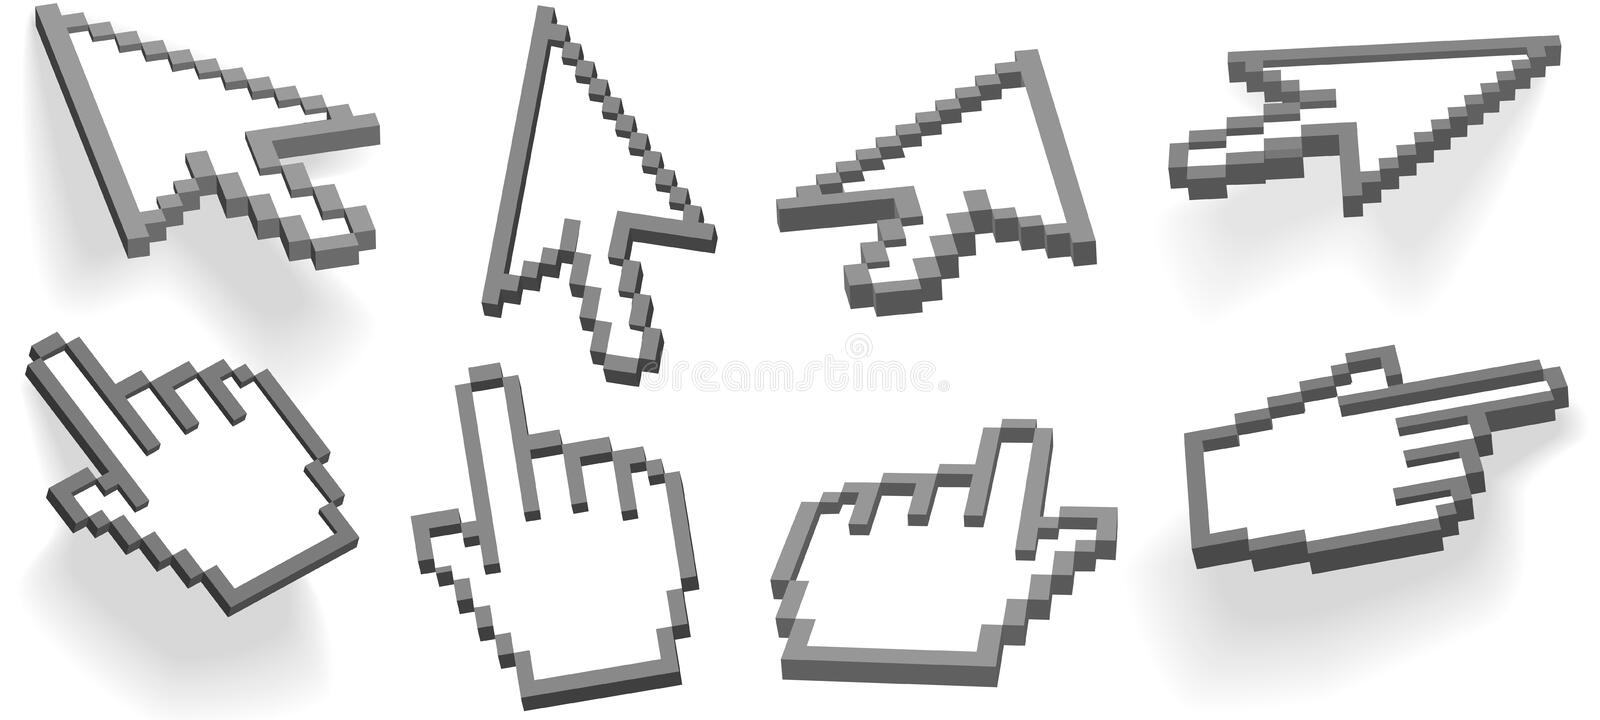 Cursor arrow hand pixel 3D cursors set royalty free illustration